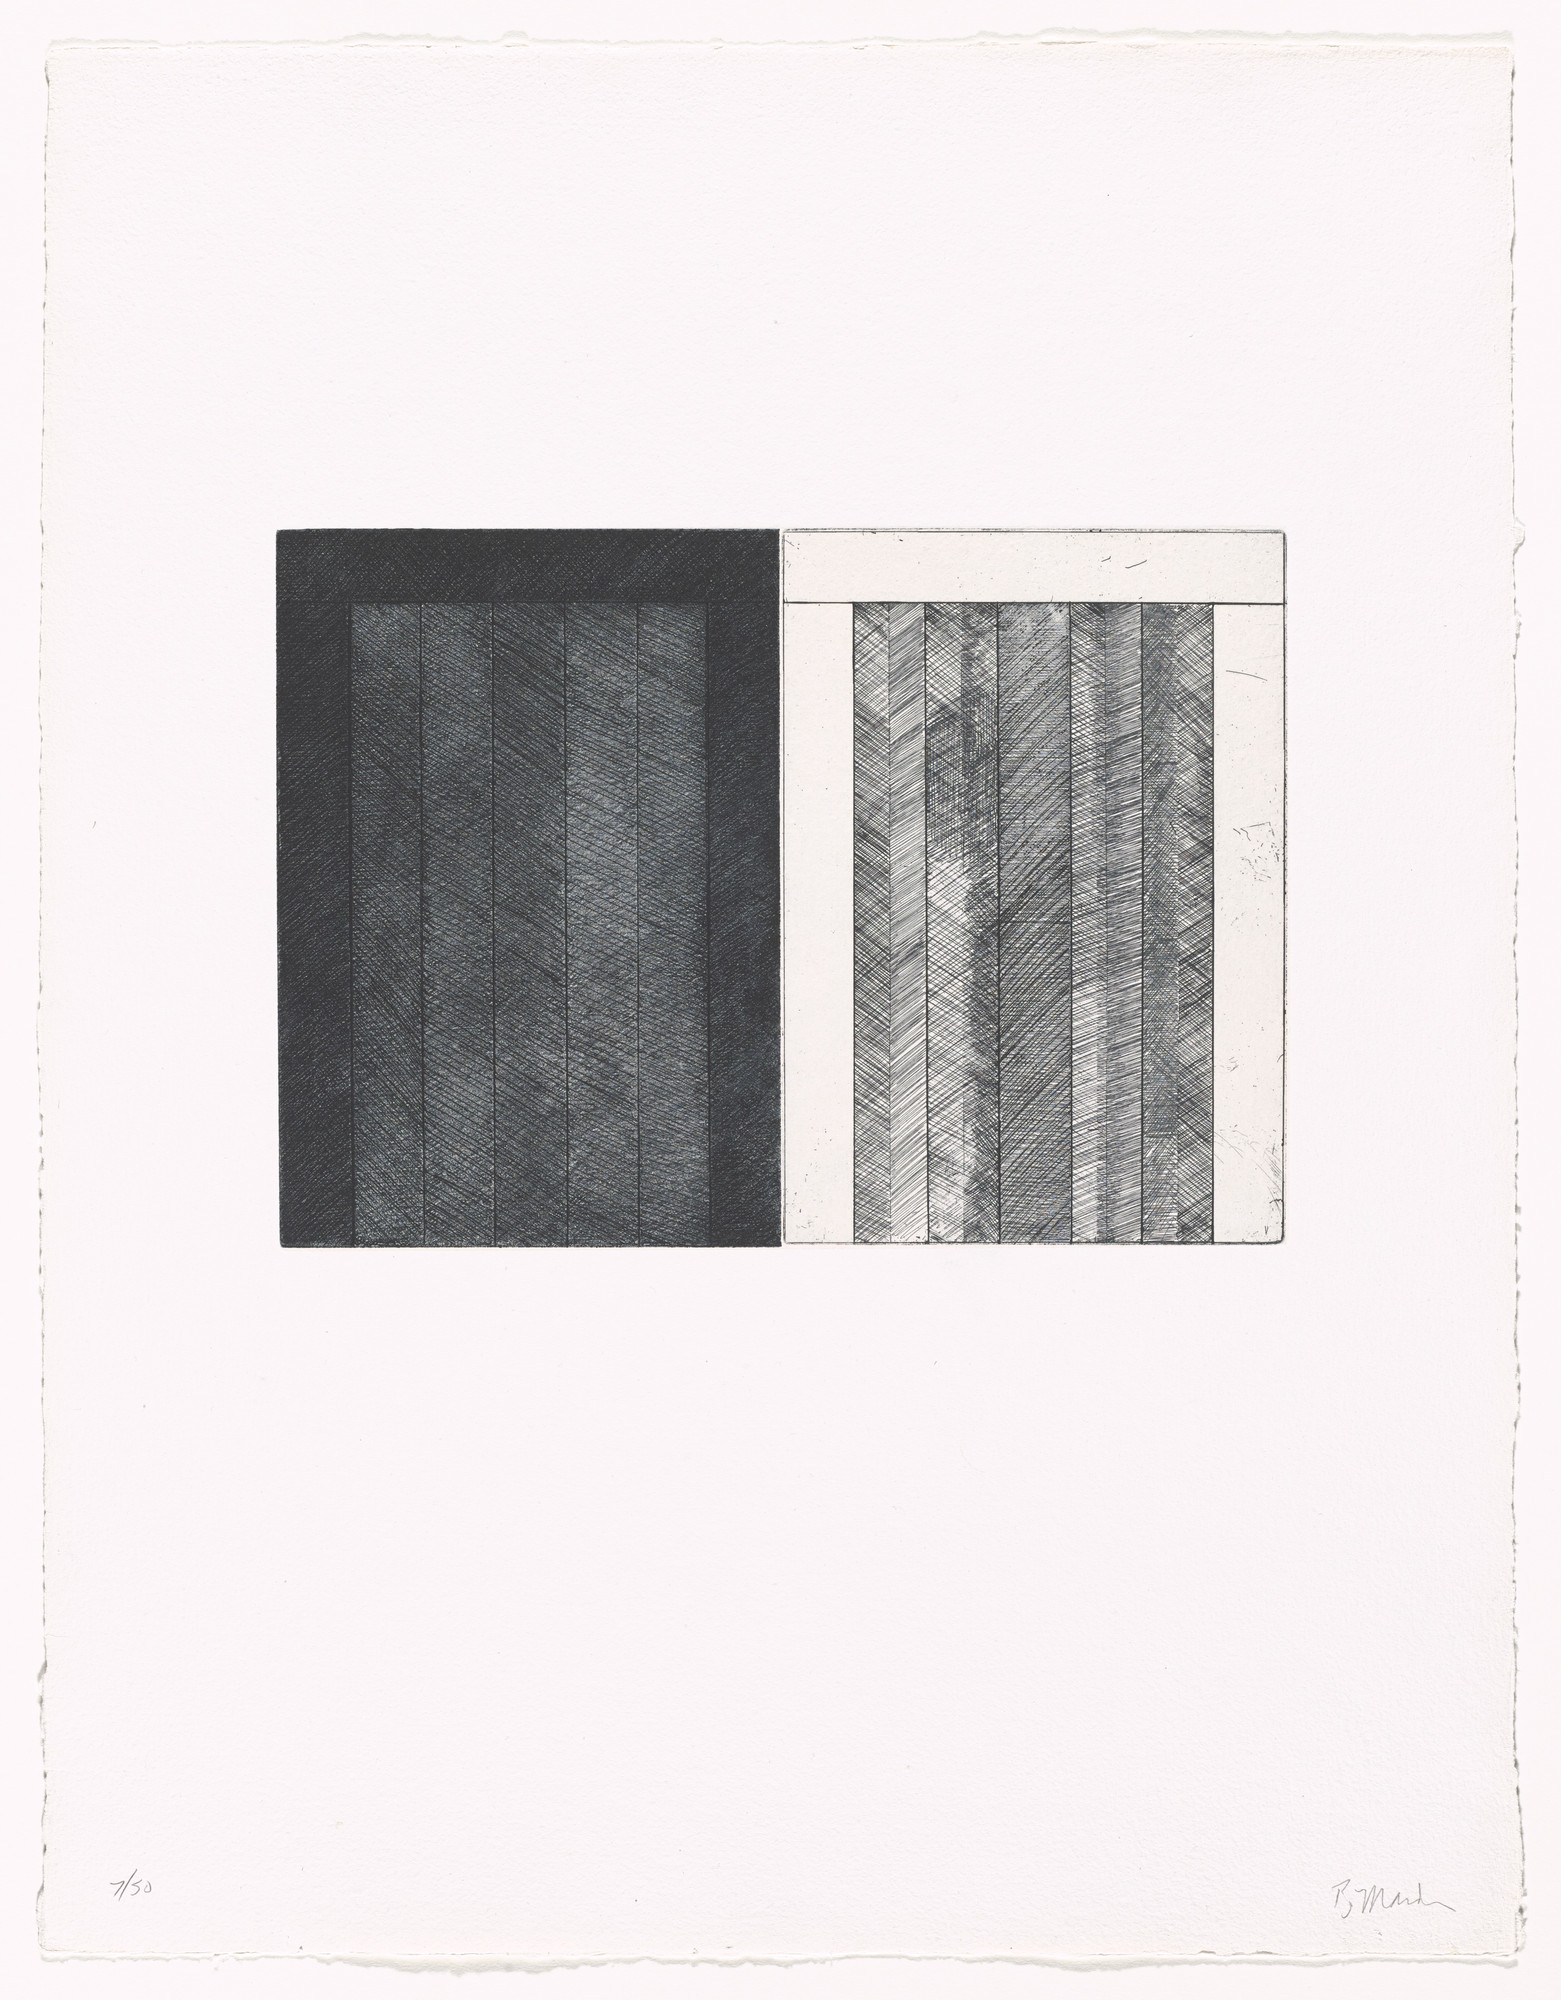 Brice Marden. Untitled from 12 Views for Caroline Tatyana. 1977–79, published 1989